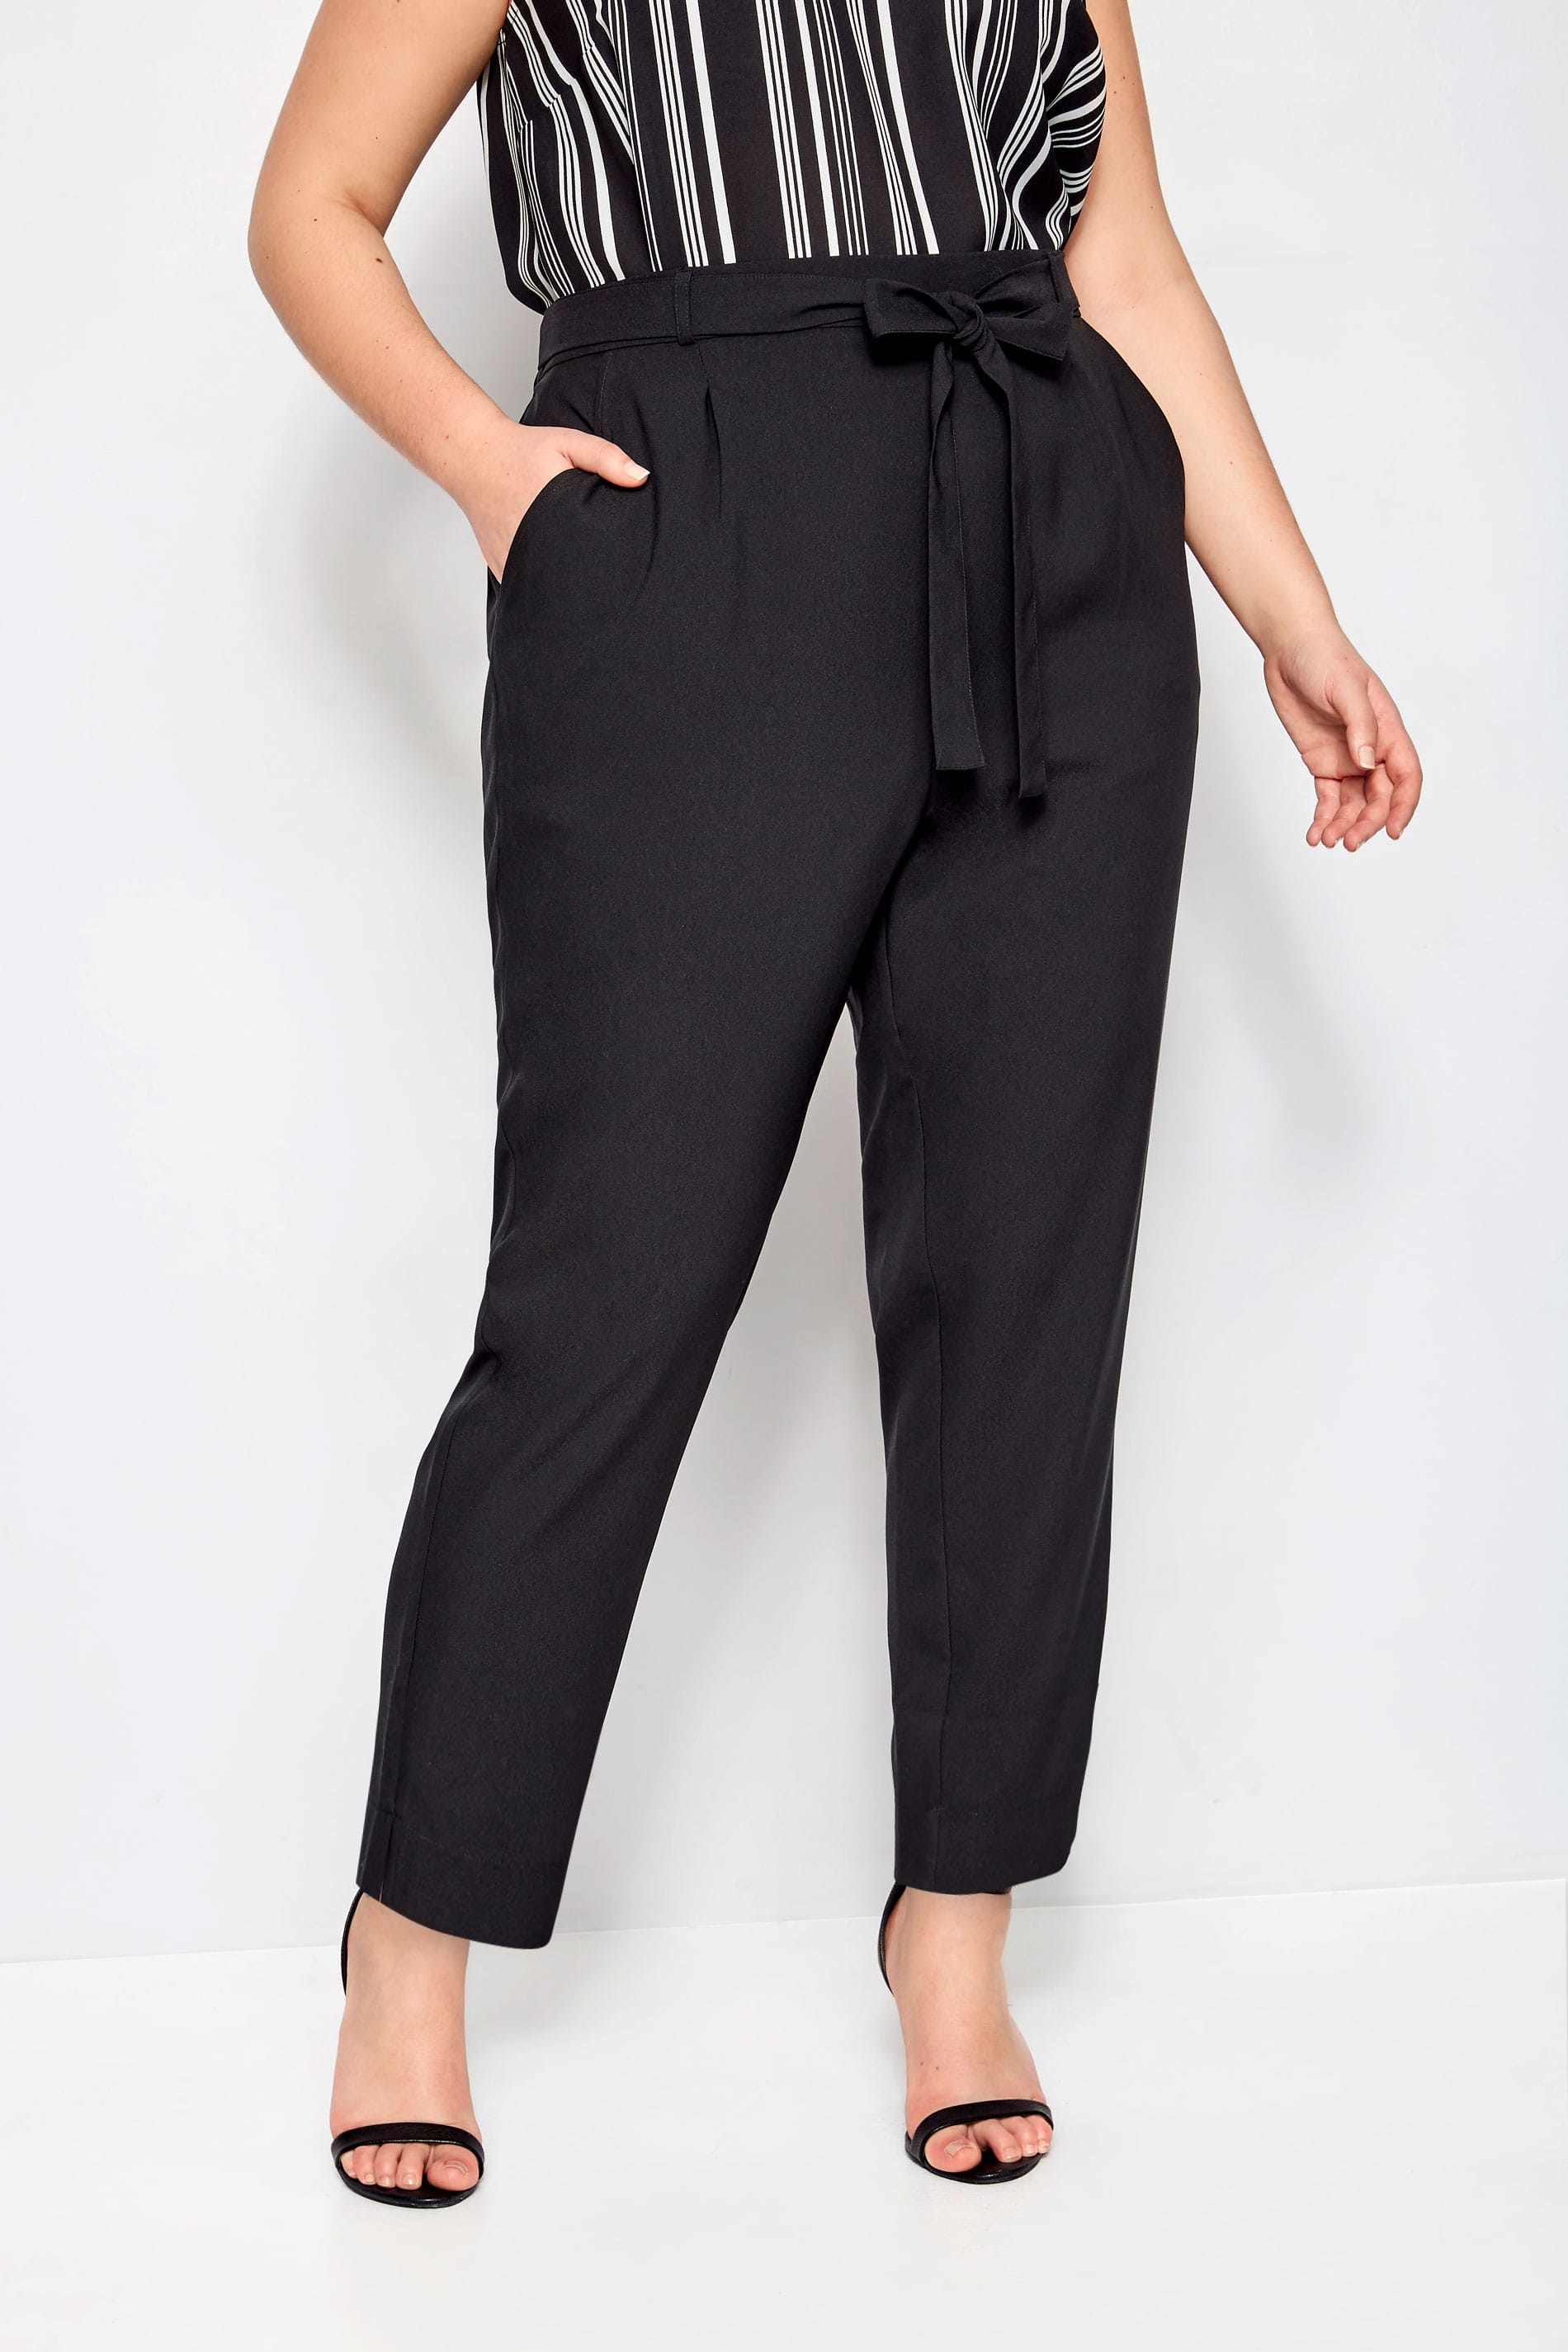 Plus Size Black Crepe Tapered Trousers Sizes 16 To 36